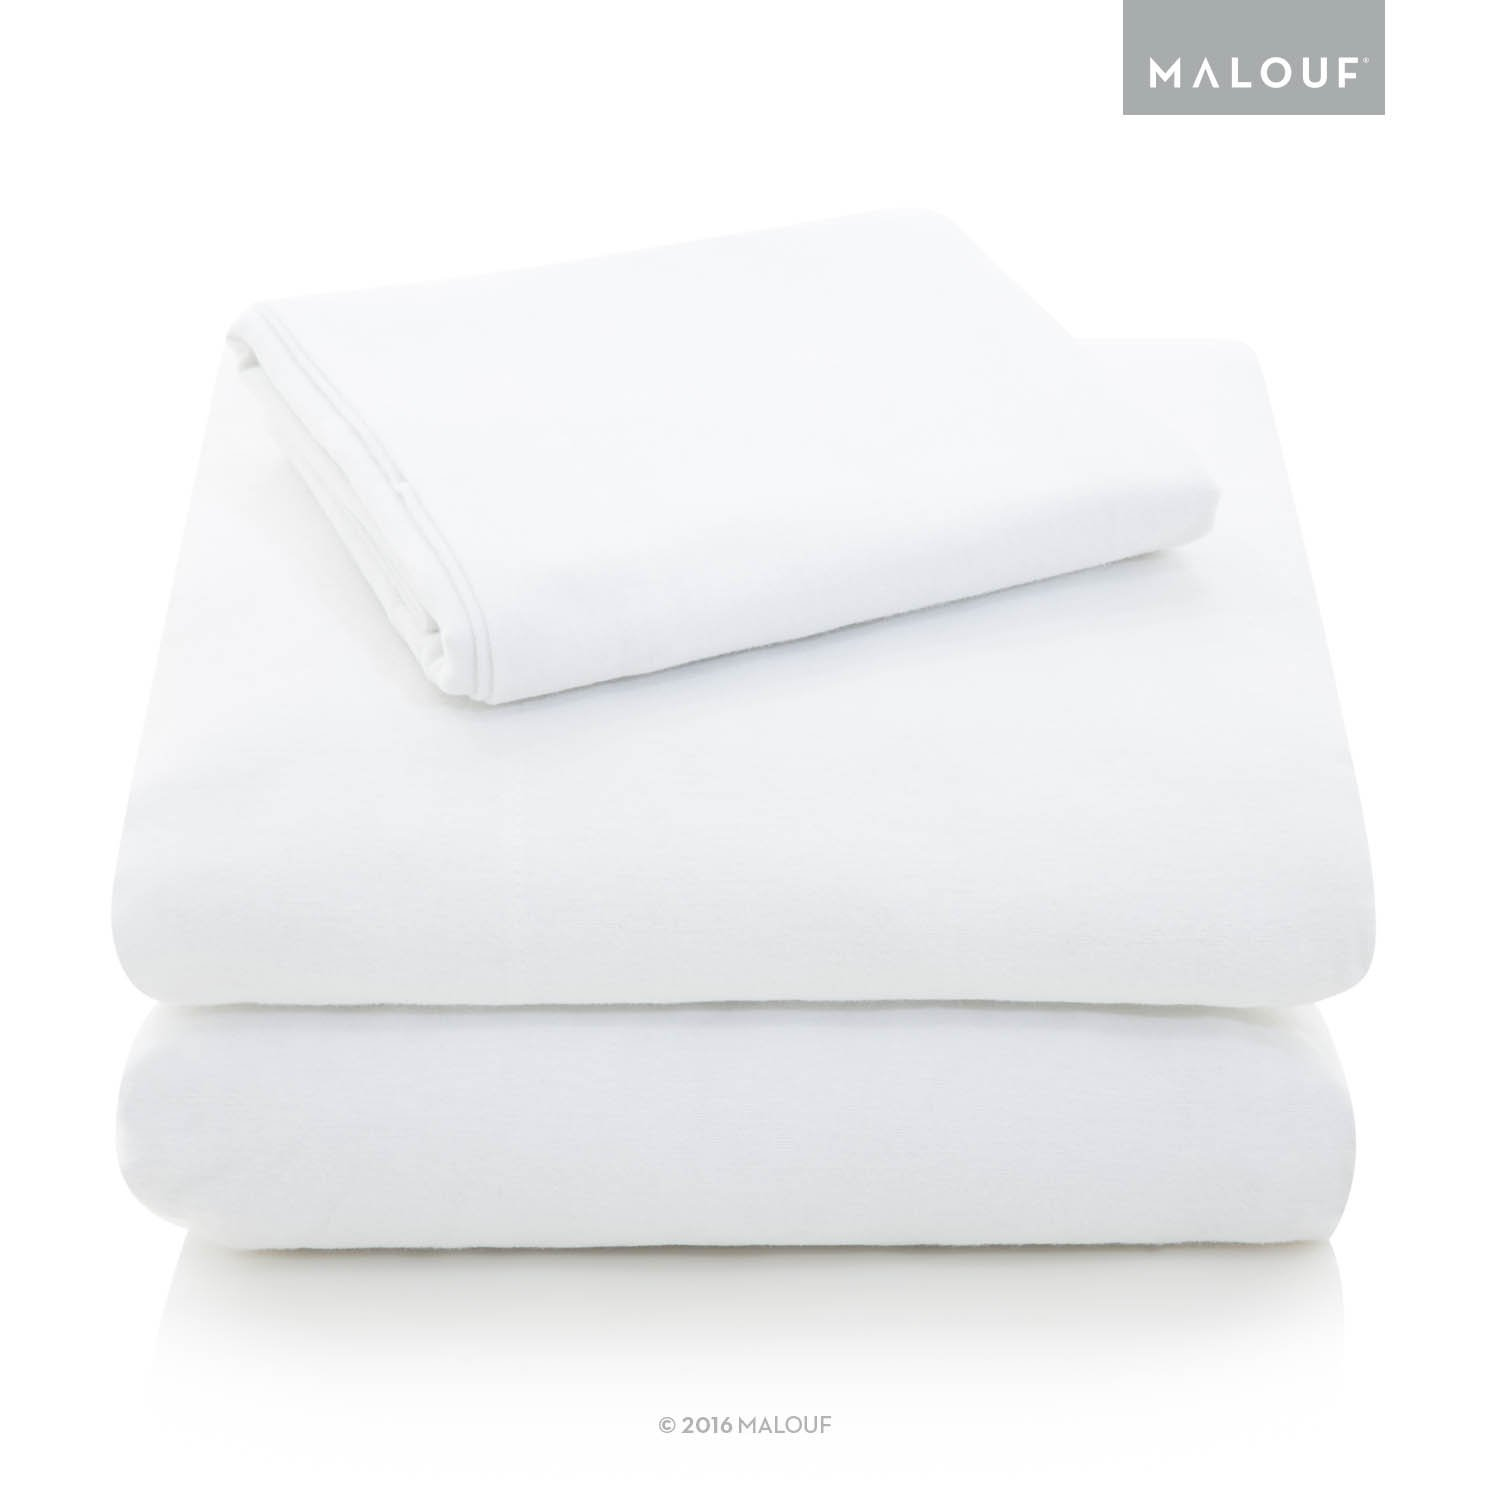 Woven Heavyweight Portuguese Flannel Sheet Set - 100% Cotton Pill Resistant Bedding - King - White